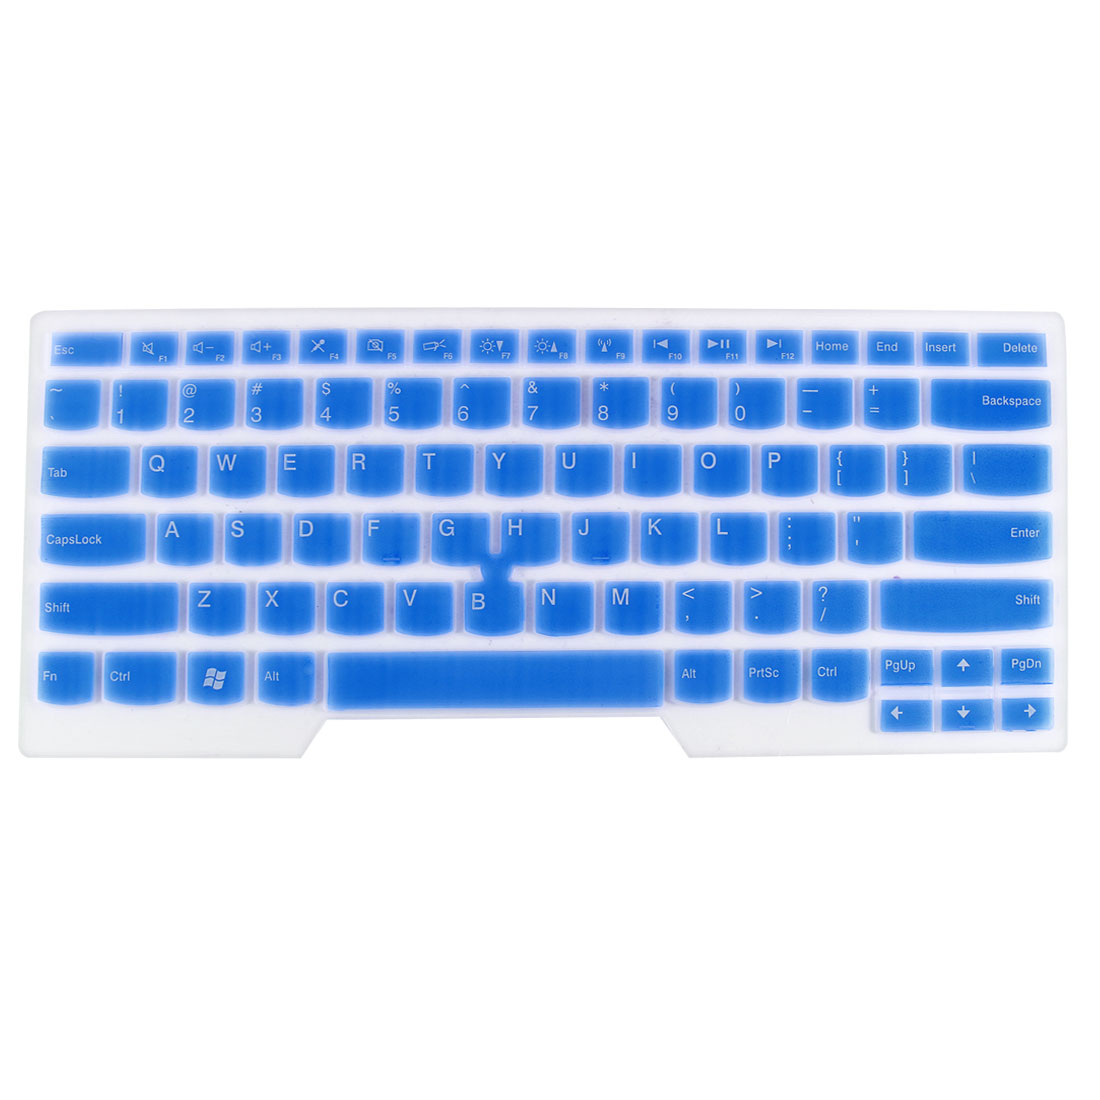 Laptop Keyboard Protector Film Blue Clear for IBM E430/E435/E330/T430/X230